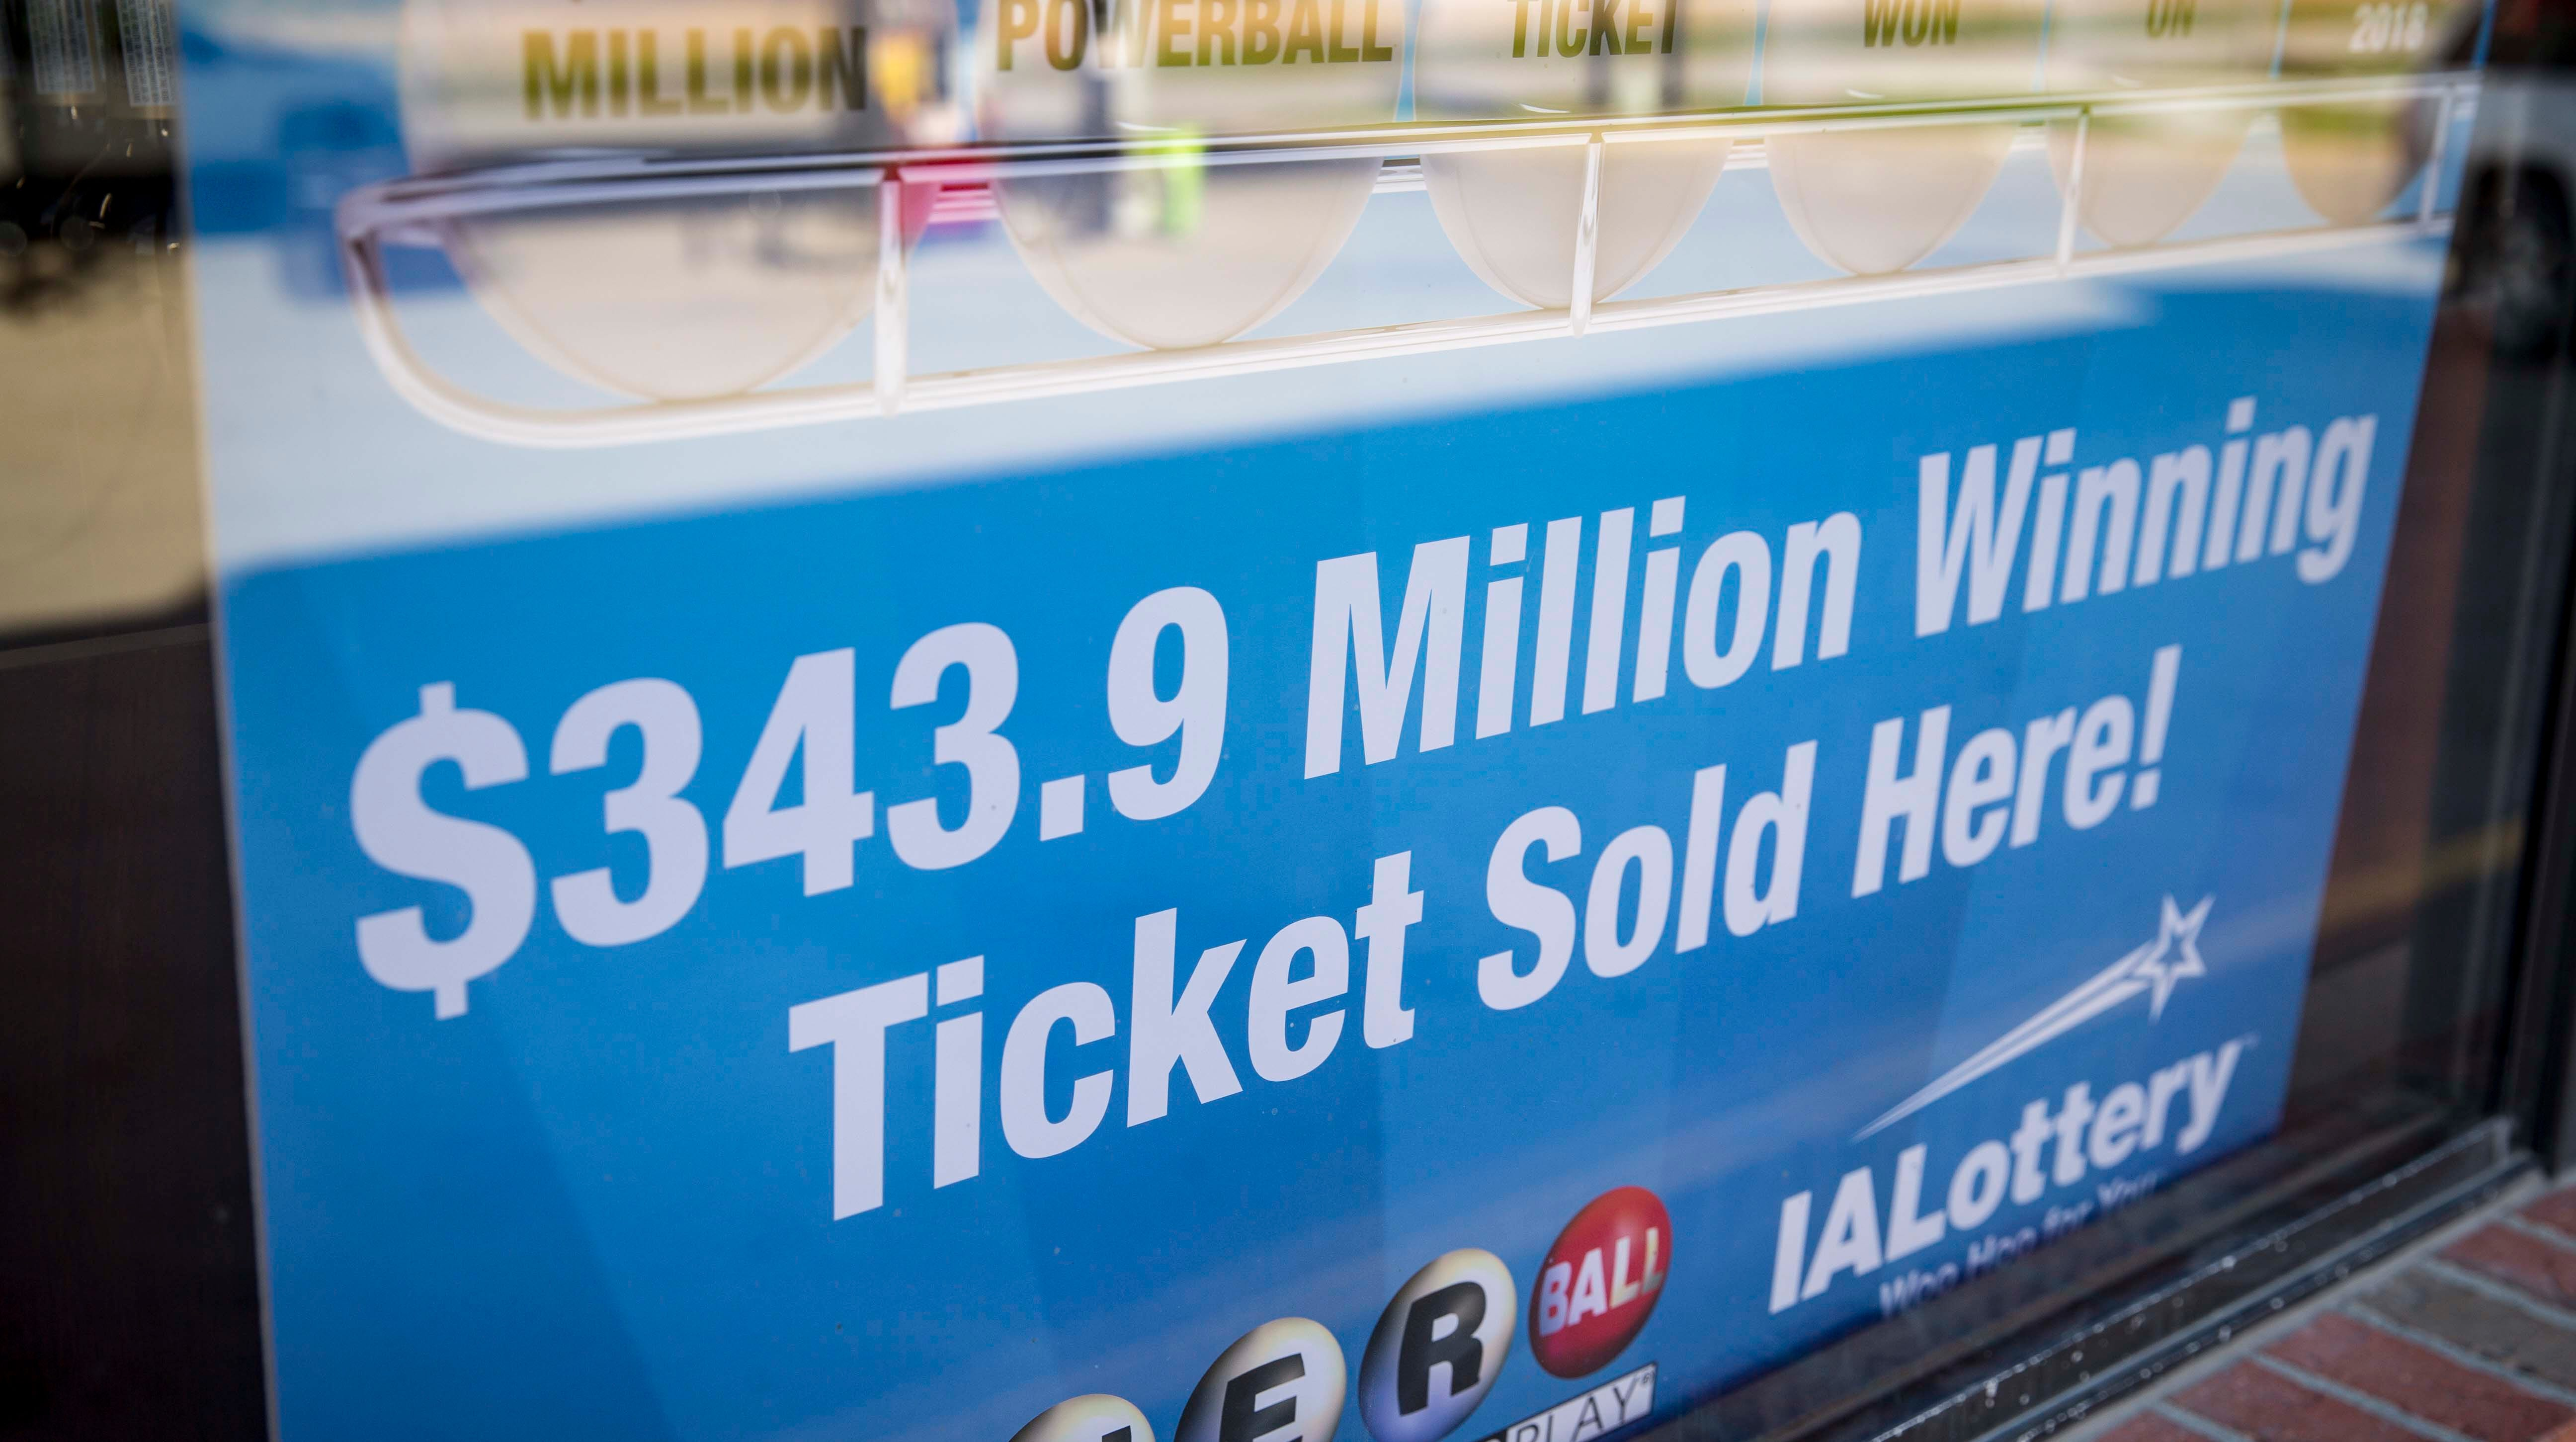 Iowa Lottery wants e-tickets, mobile app payments for cashless consumer convenience